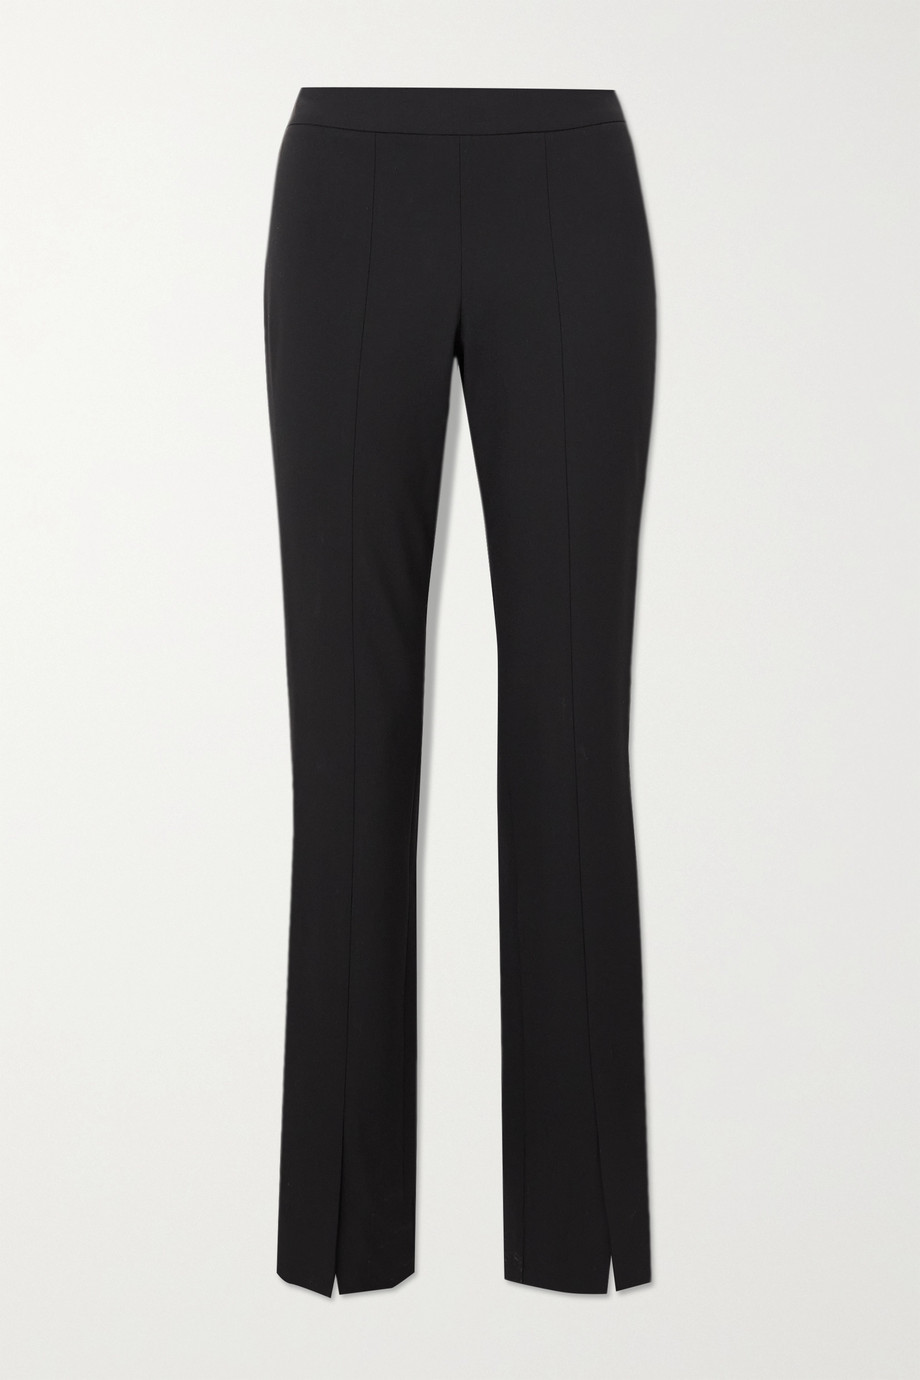 HOLZWEILER Sira stretch-cady slim-leg pants